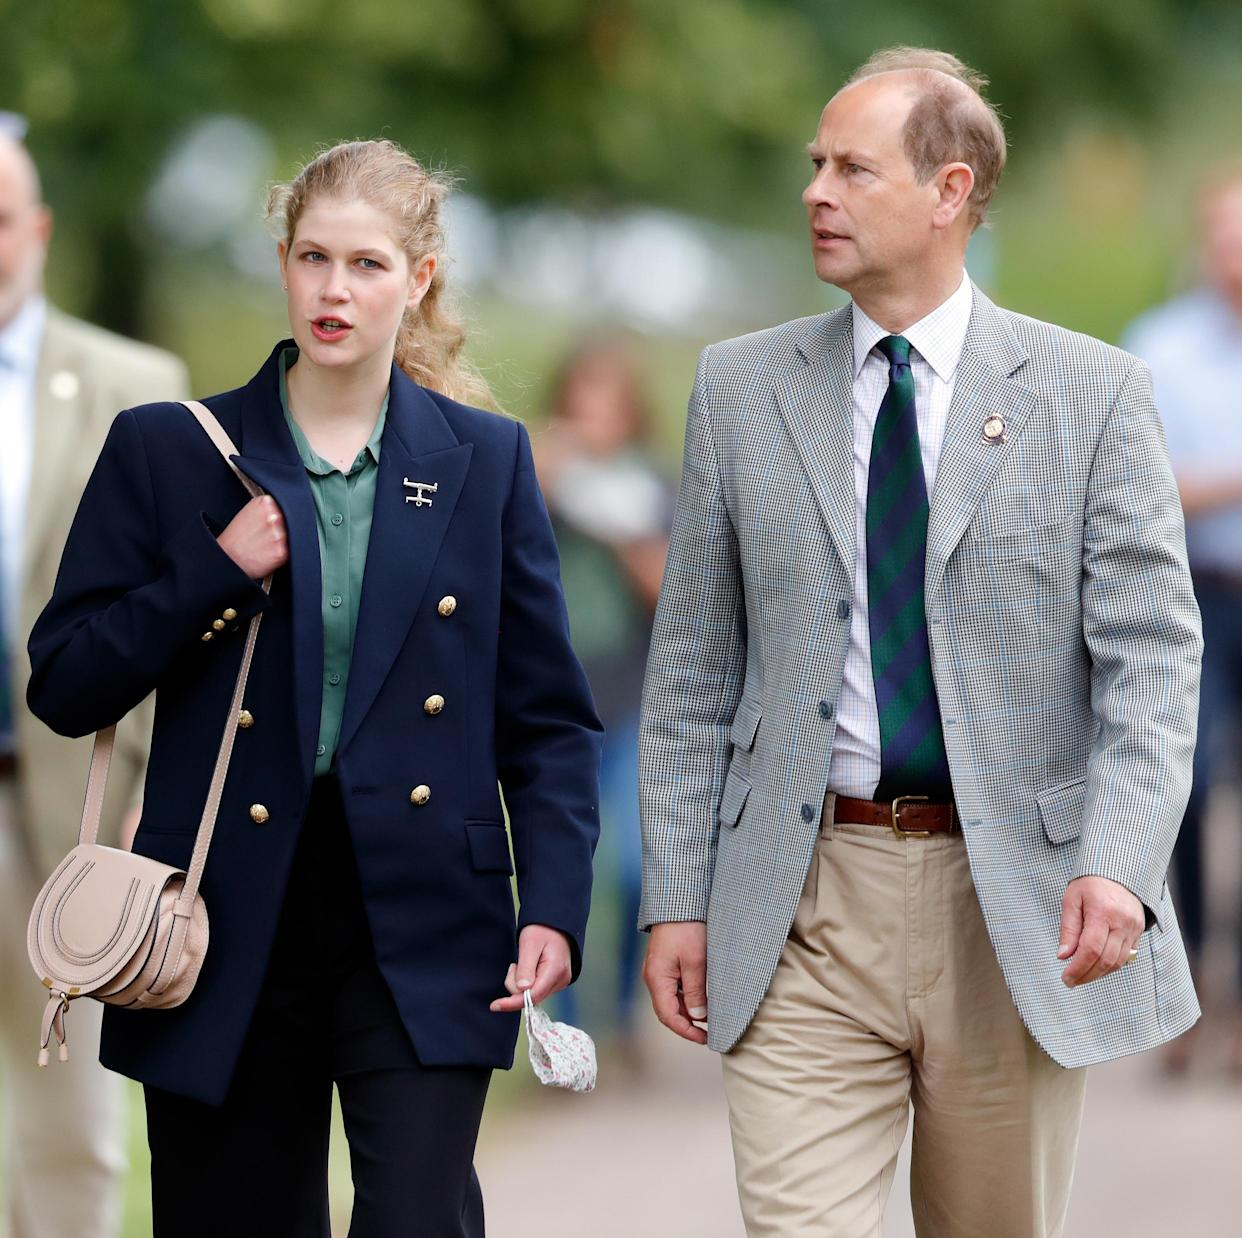 WINDSOR, UNITED KINGDOM - JULY 03: (EMBARGOED FOR PUBLICATION IN UK NEWSPAPERS UNTIL 24 HOURS AFTER CREATE DATE AND TIME) Lady Louise Windsor and Prince Edward, Earl of Wessex attend day 3 of the Royal Windsor Horse Show in Home Park, Windsor Castle on July 3, 2021 in Windsor, England. (Photo by Max Mumby/Indigo/Getty Images)